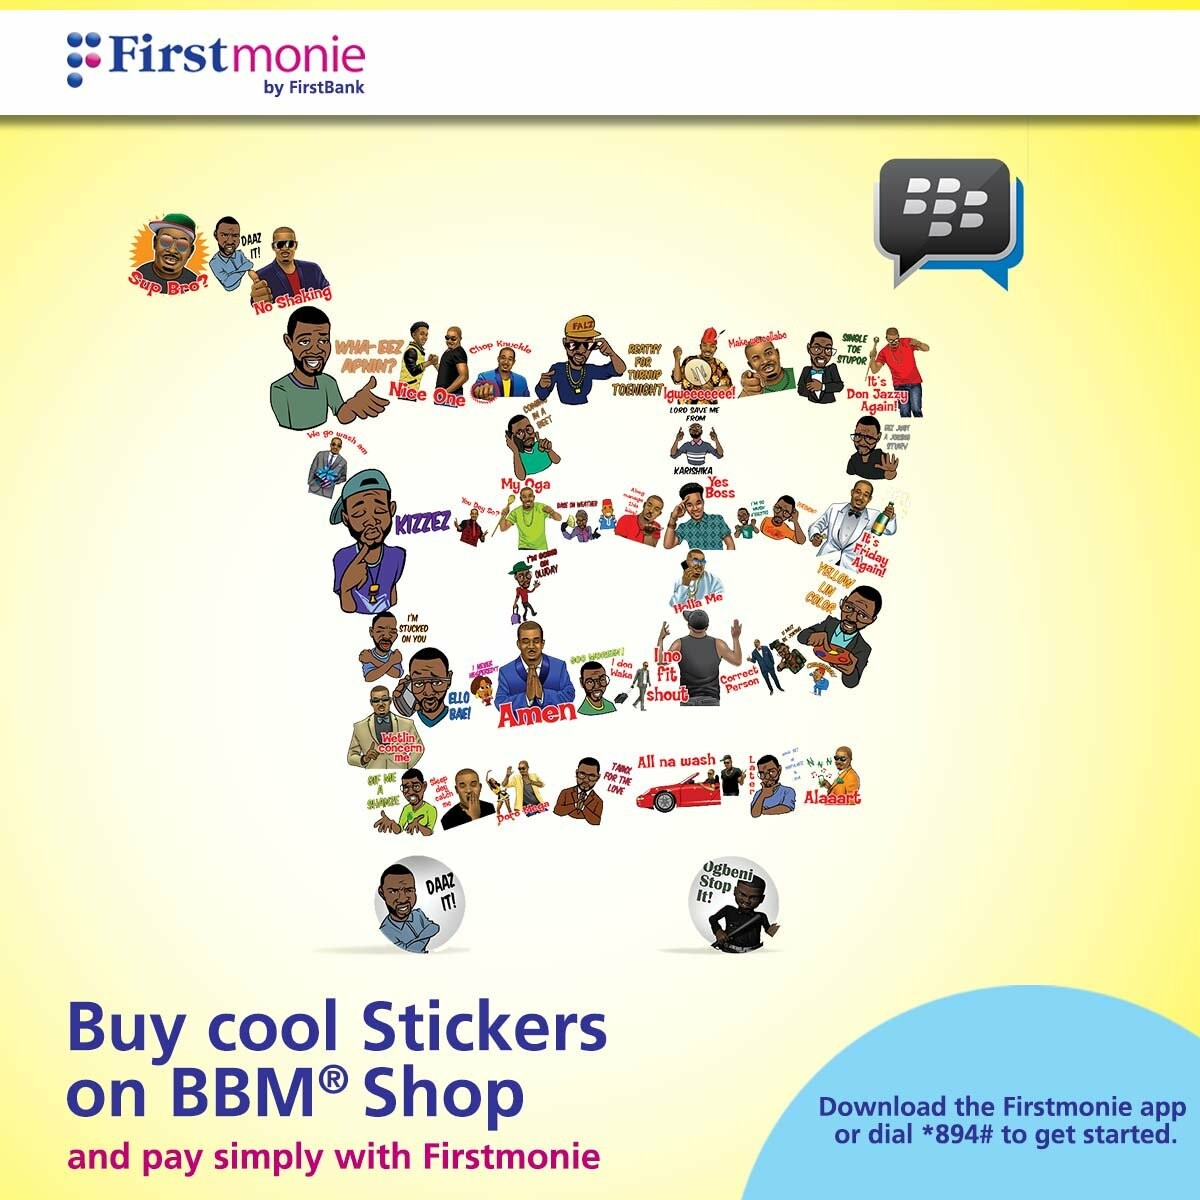 Firstmonie, MMIT and BlackBerry team up to enable social commerce through BBM in Nigeria